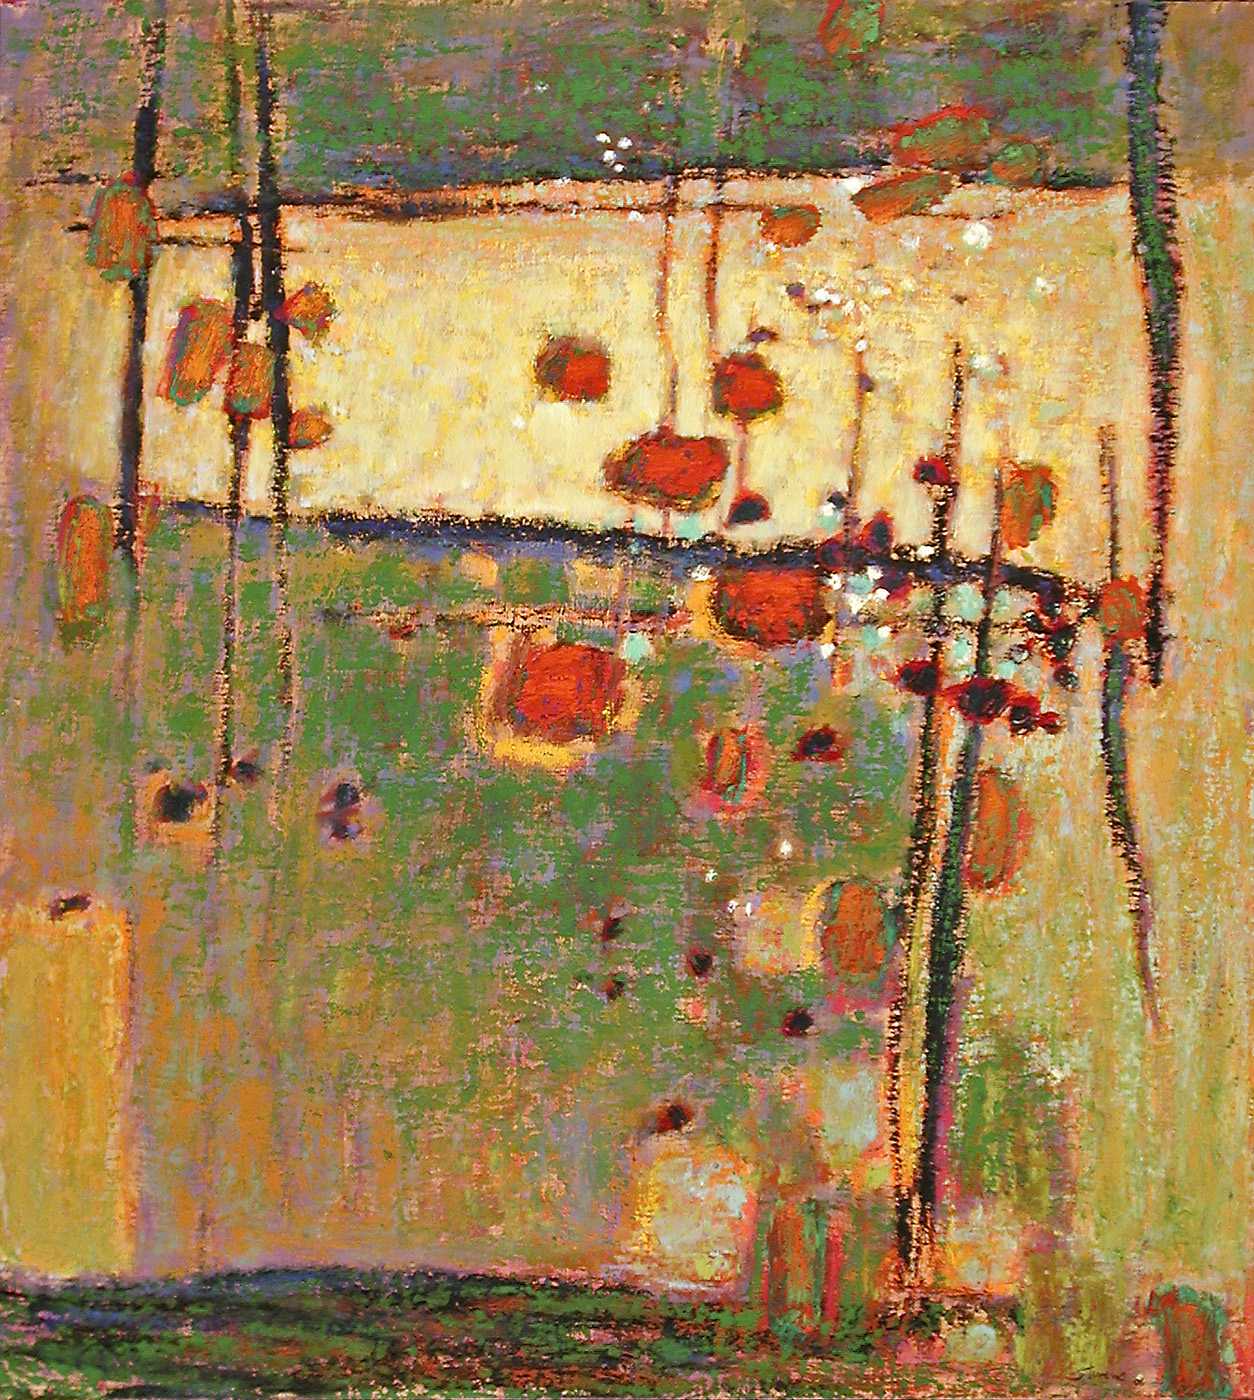 Unexpected Source   | oil on canvas | 40 x 36"